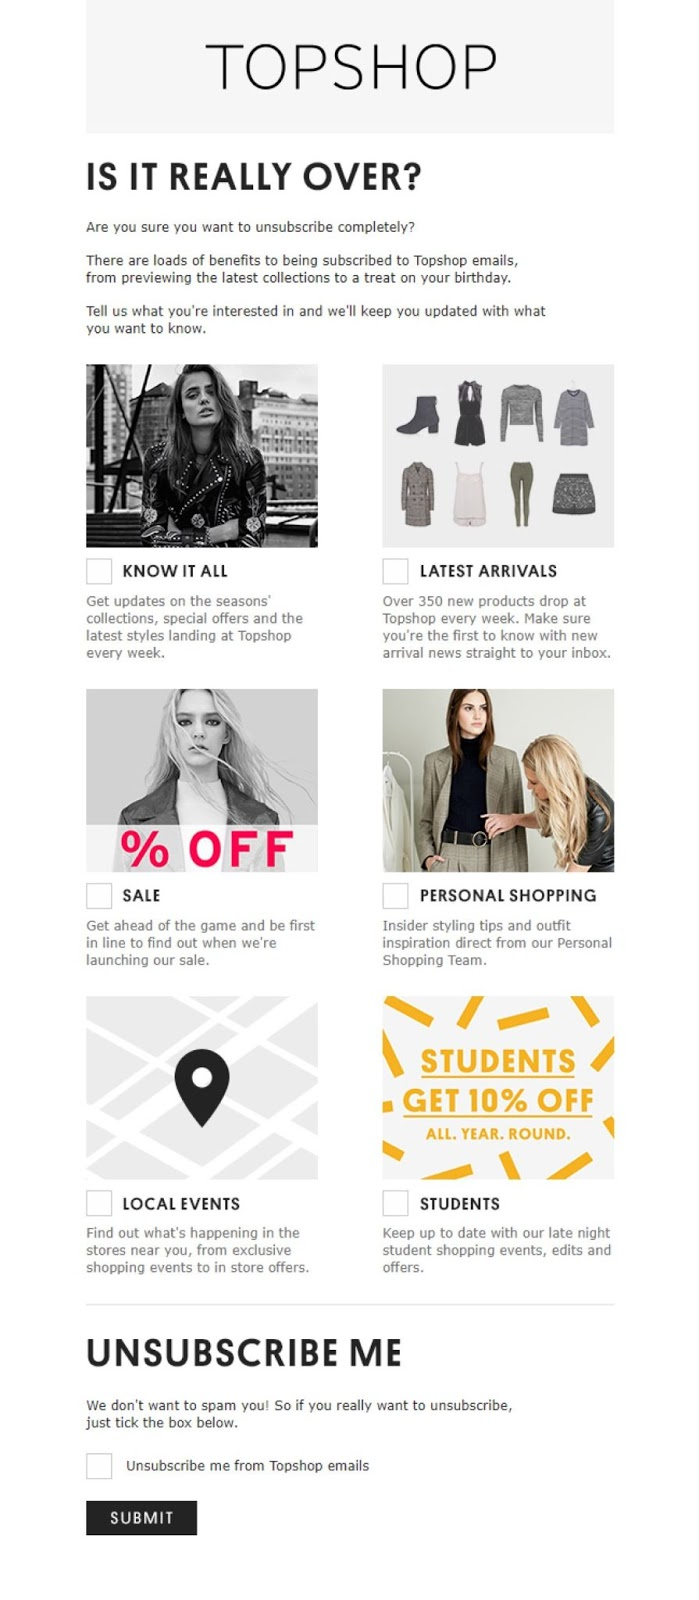 example of an unsubscribe page from top shop